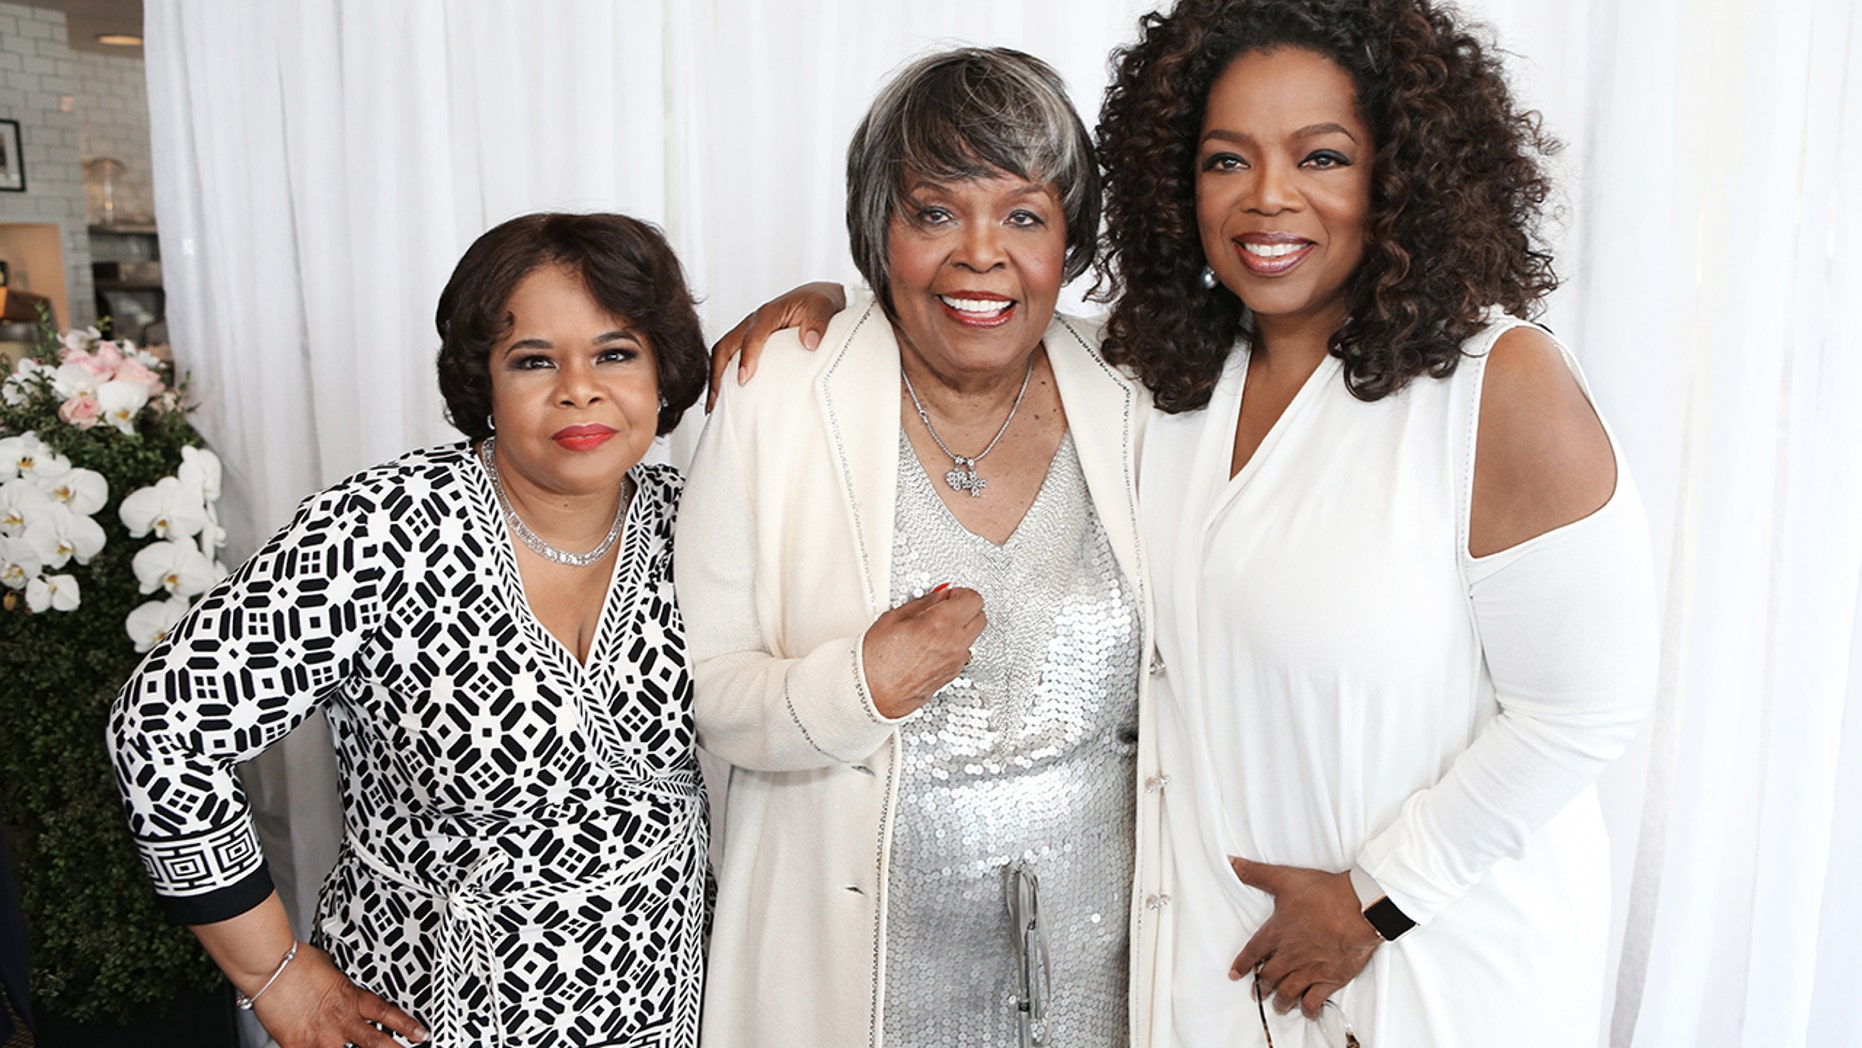 Oprah Winfrey's mother dies, aged 83